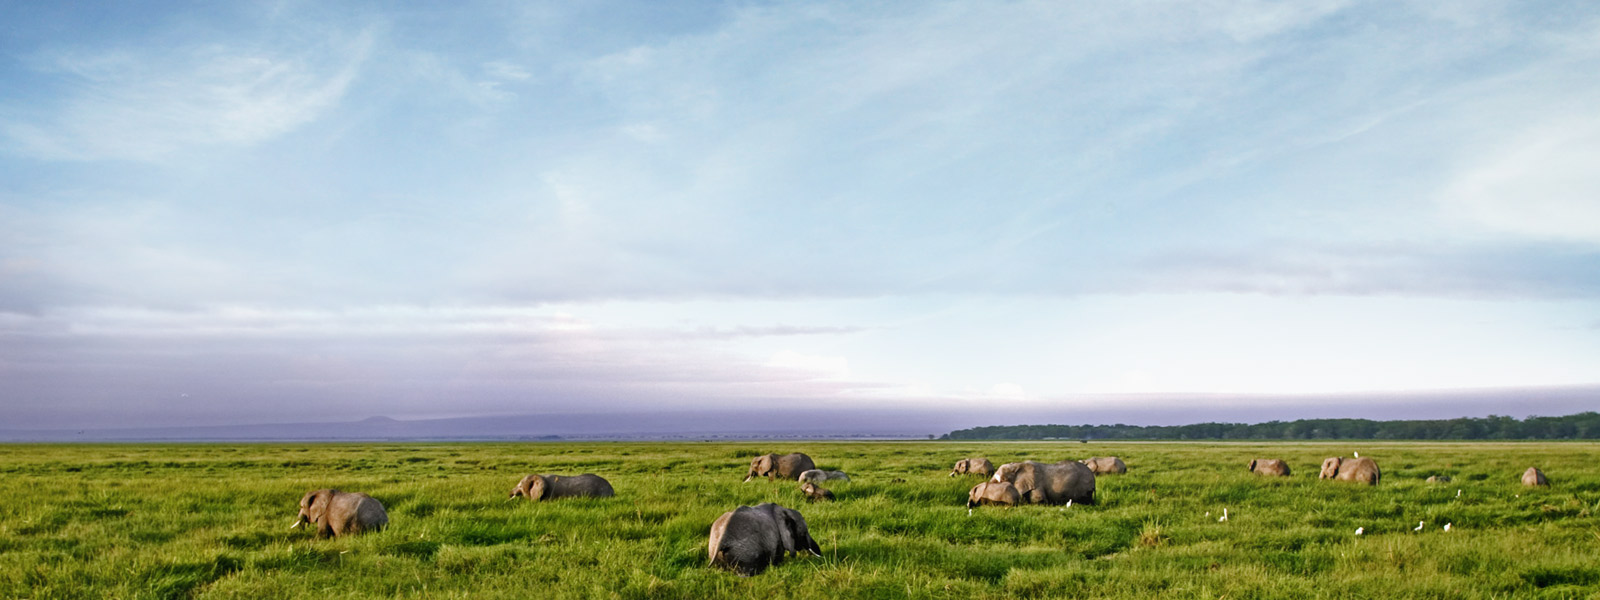 numerous elephants in a grass landscape